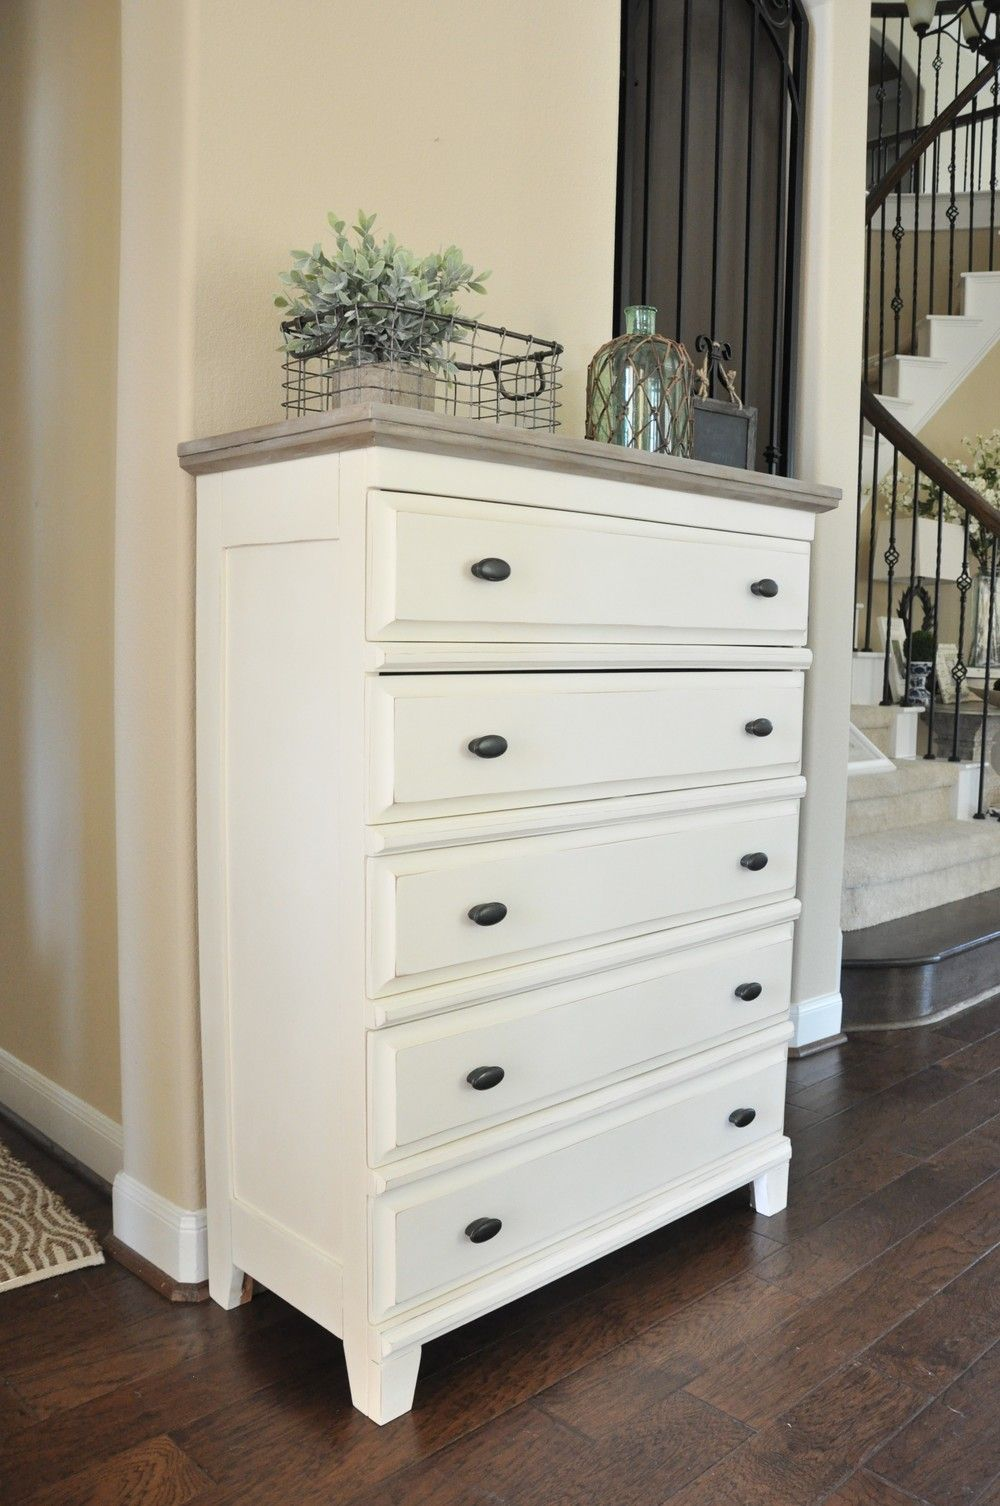 From Transitional to Cottage Style With Chalk Paint — The Grace ...